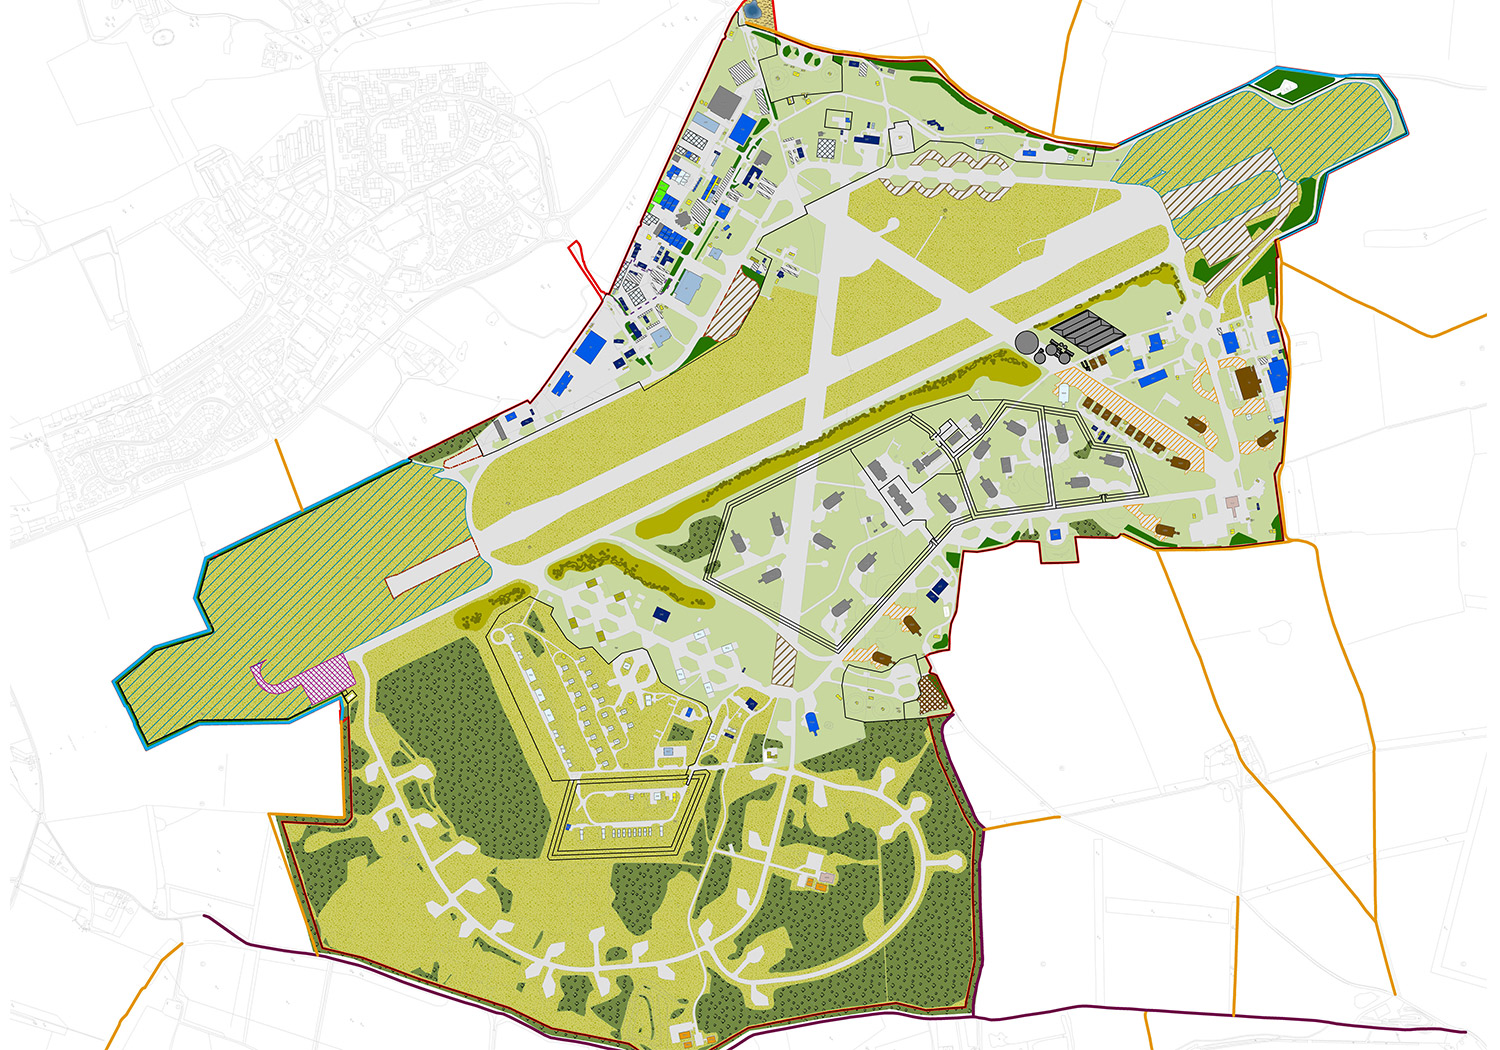 Projects-EnergyClimChg-Masterplan-1500x1050